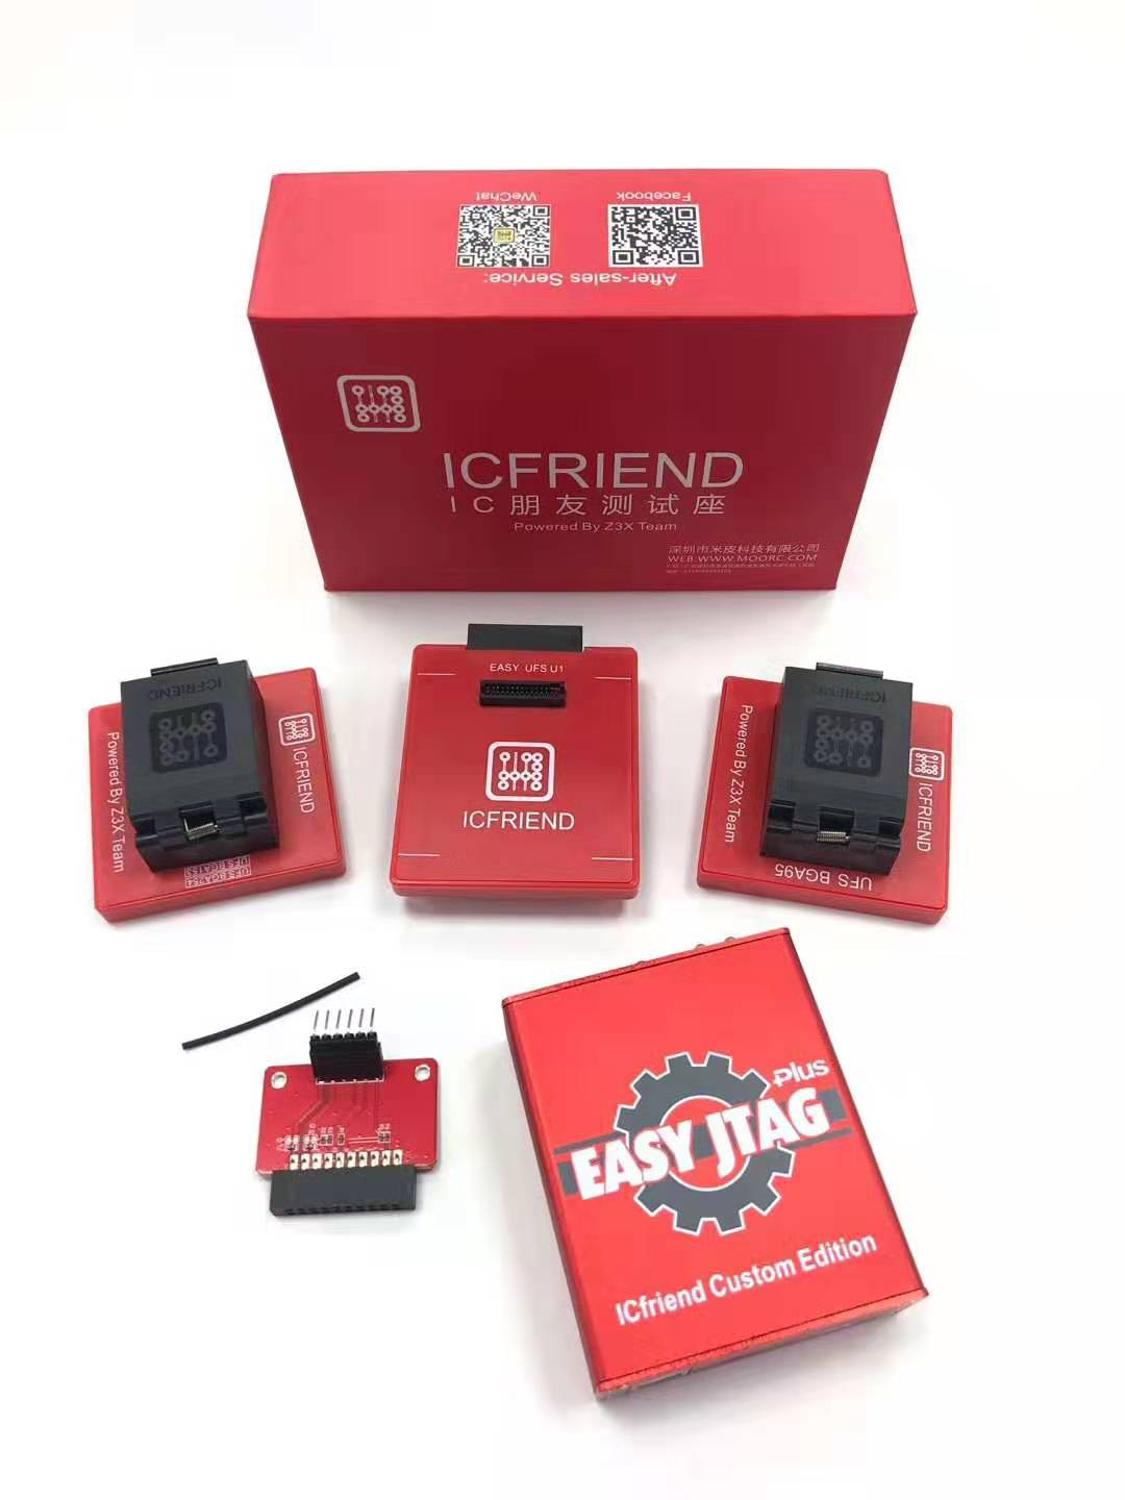 Z3x Pro Set ICfriend +easy Jtag Box 3 In 1 Pro Version